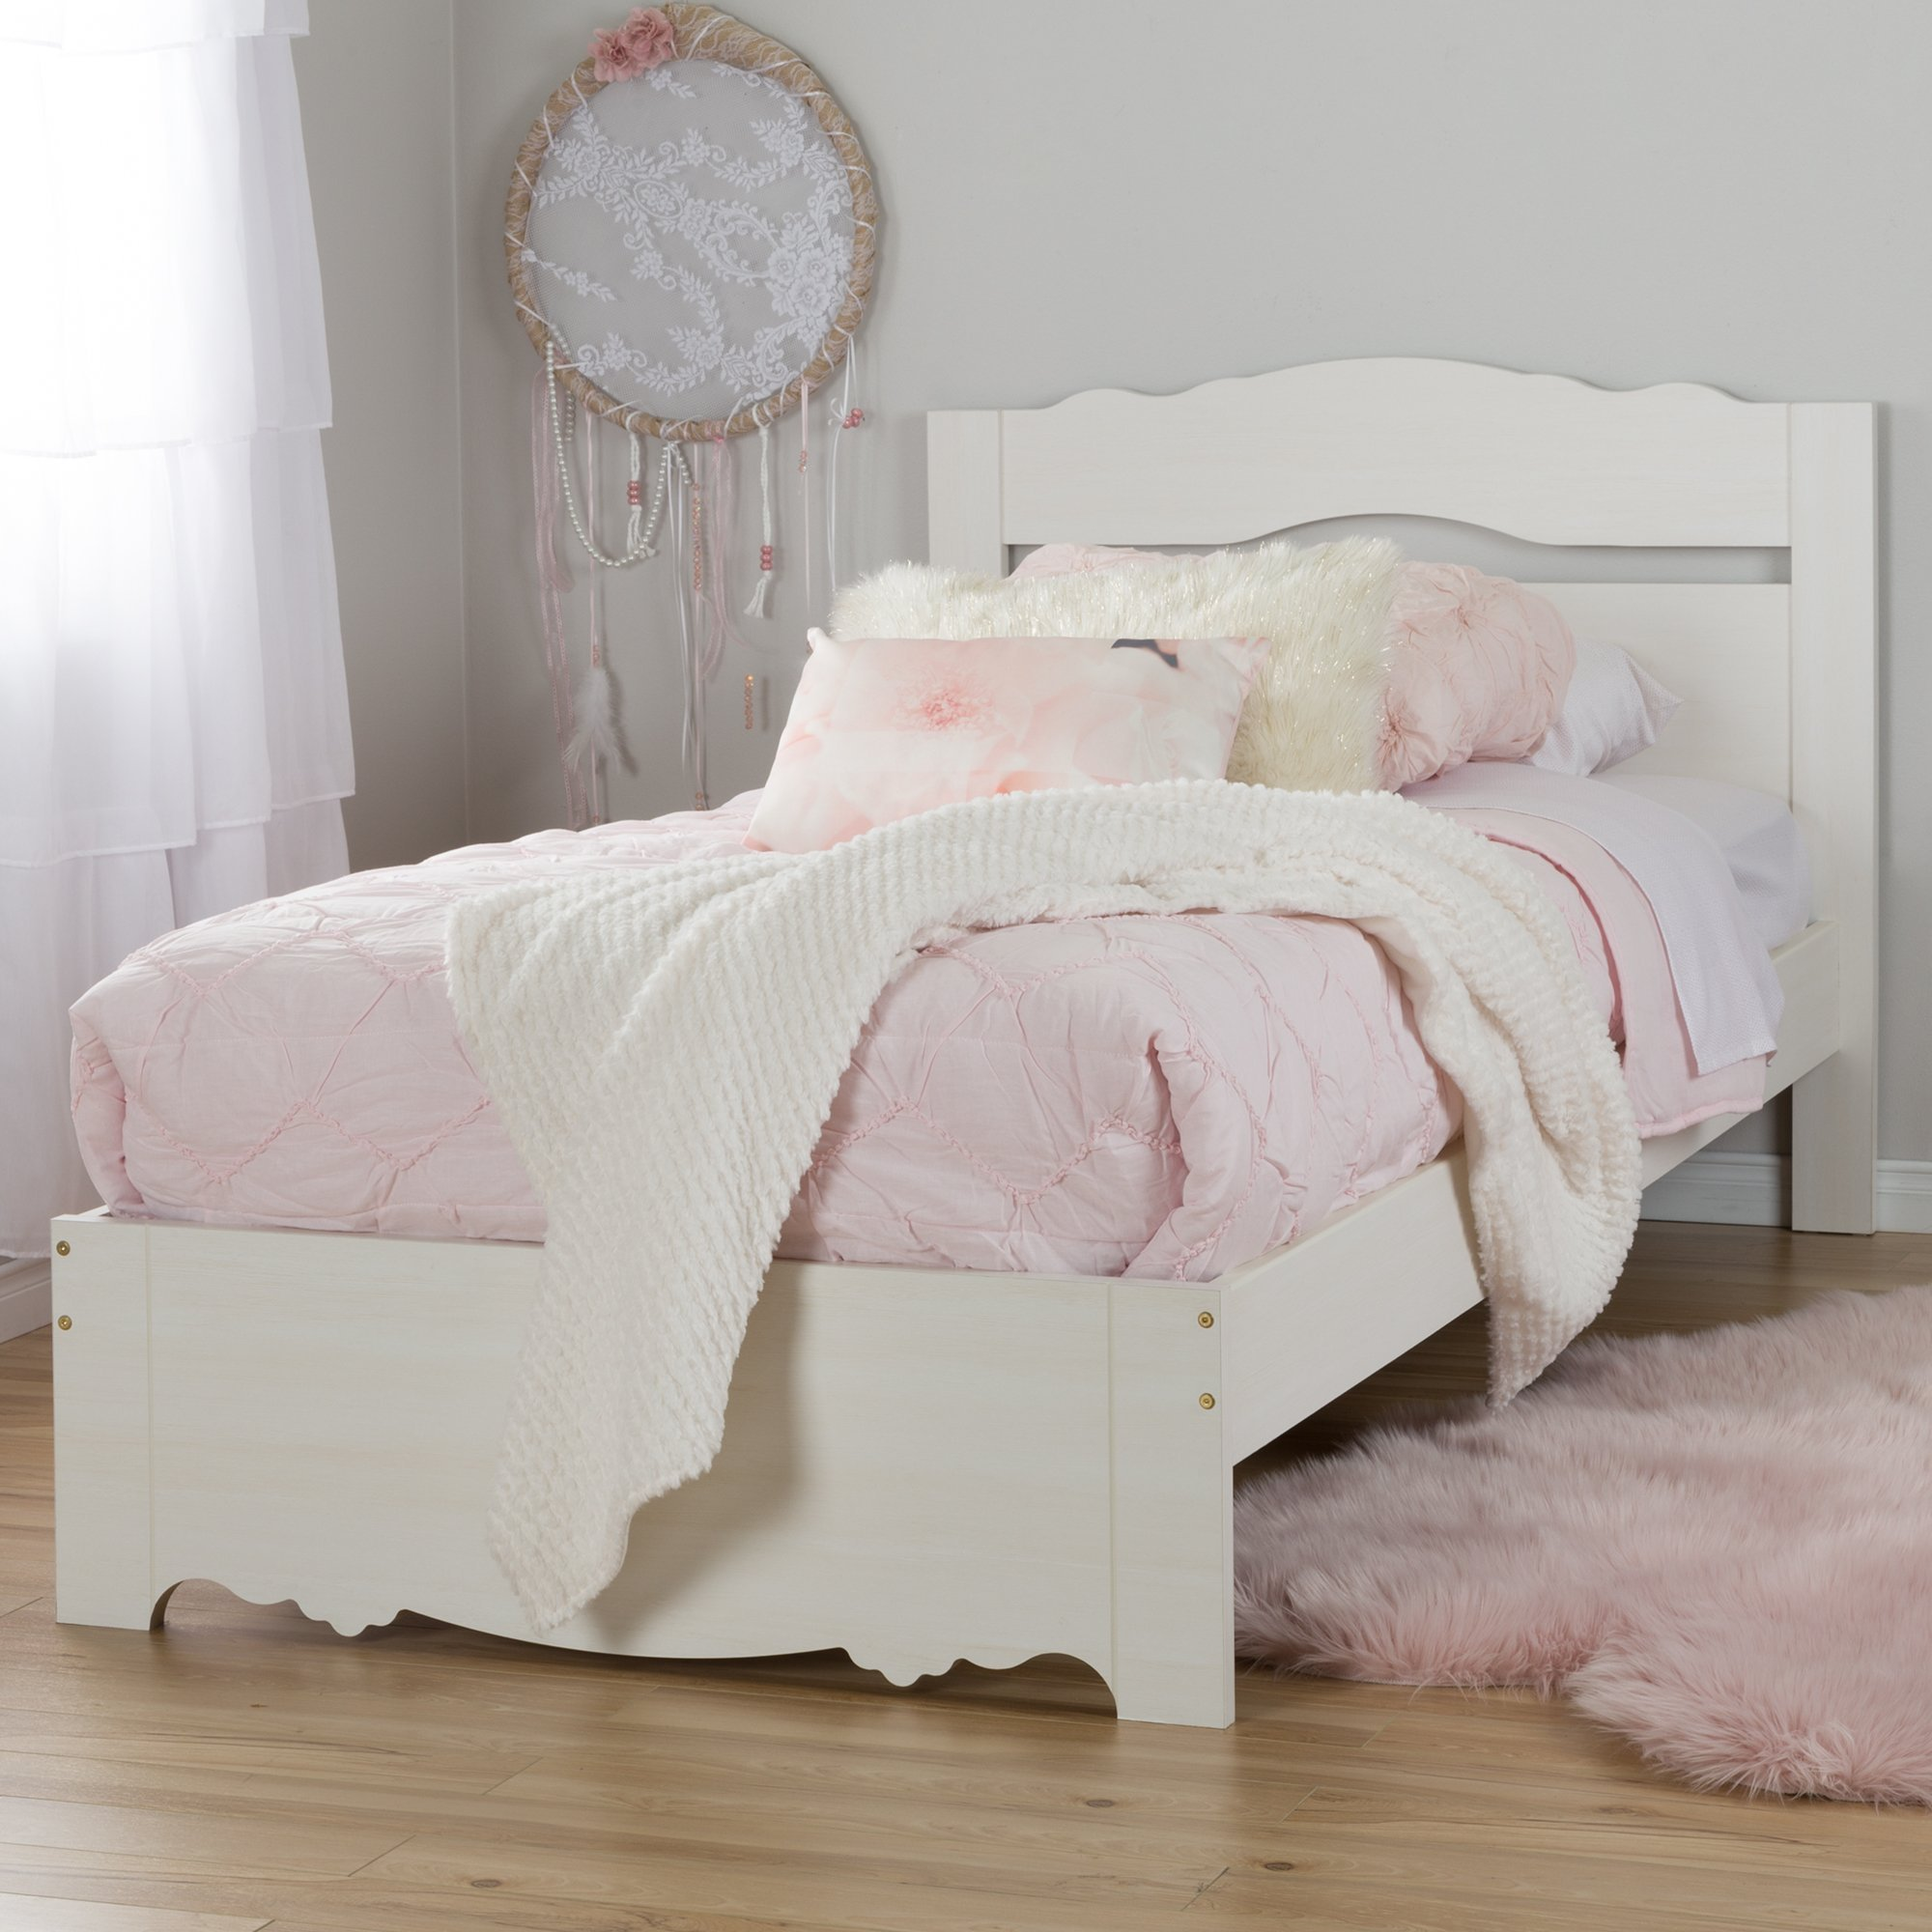 South Shore 39'' Lily Rose Bed Set, Twin, White Wash